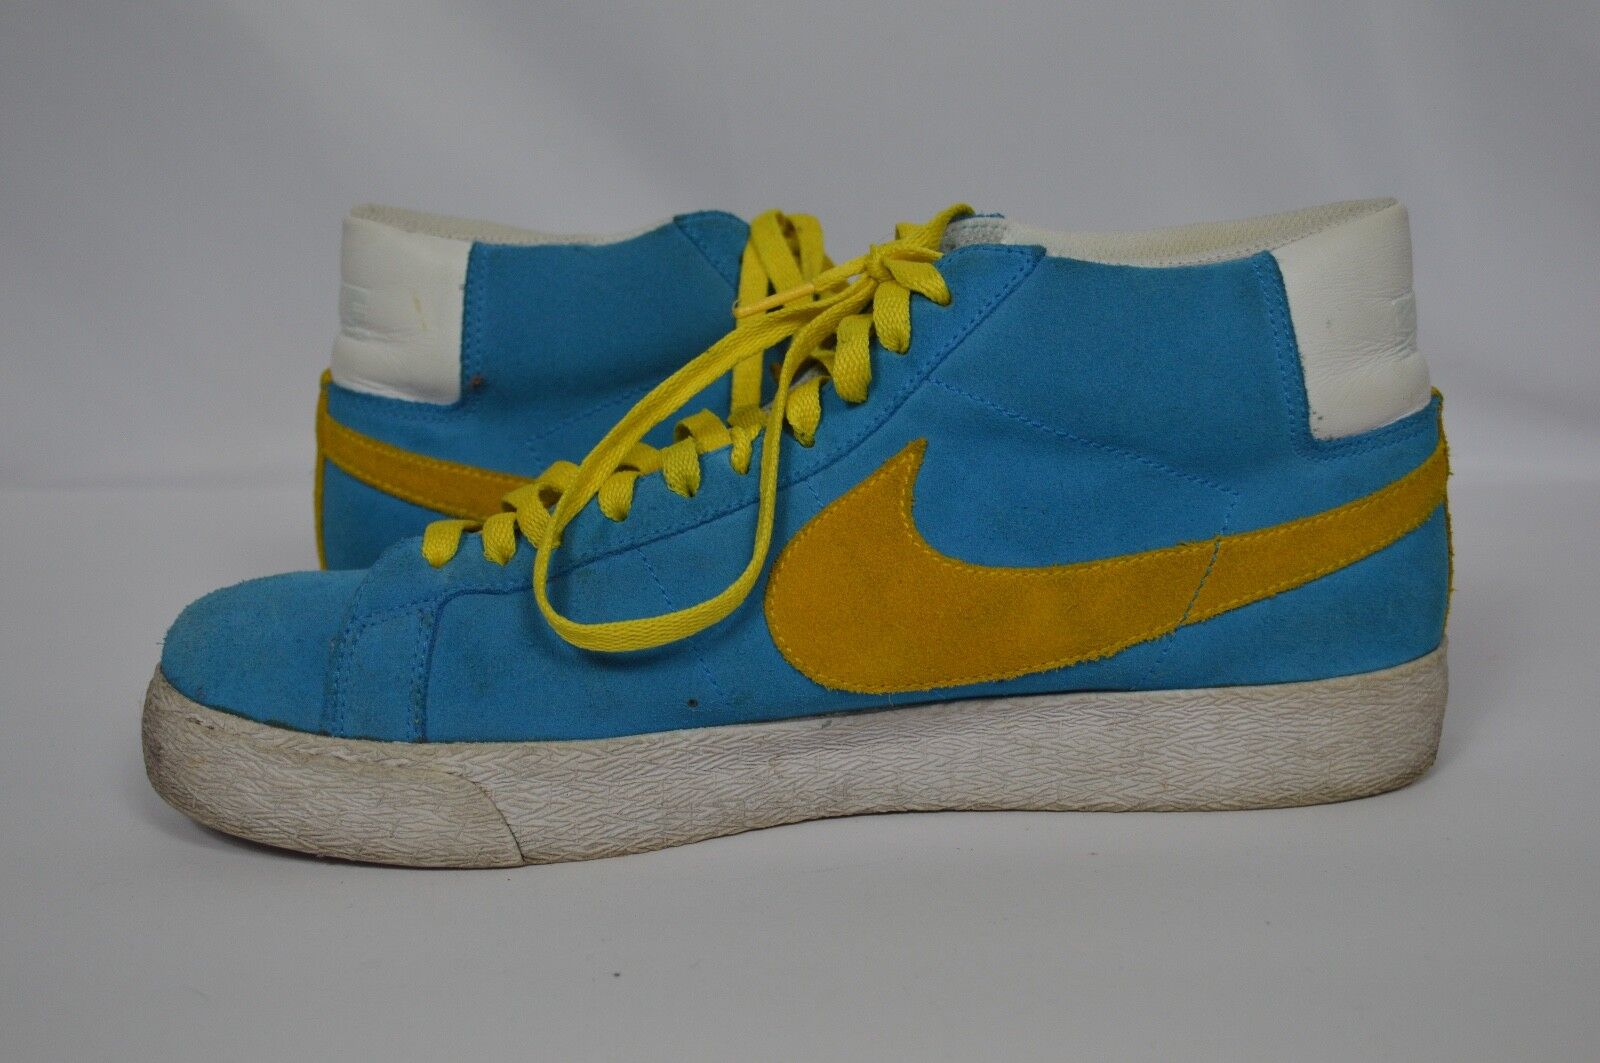 NIKE BLAZER SB SWEDISH blueeE VARSITY MAIZE Danijel Todgoldvic 310801-471 US Sz 12